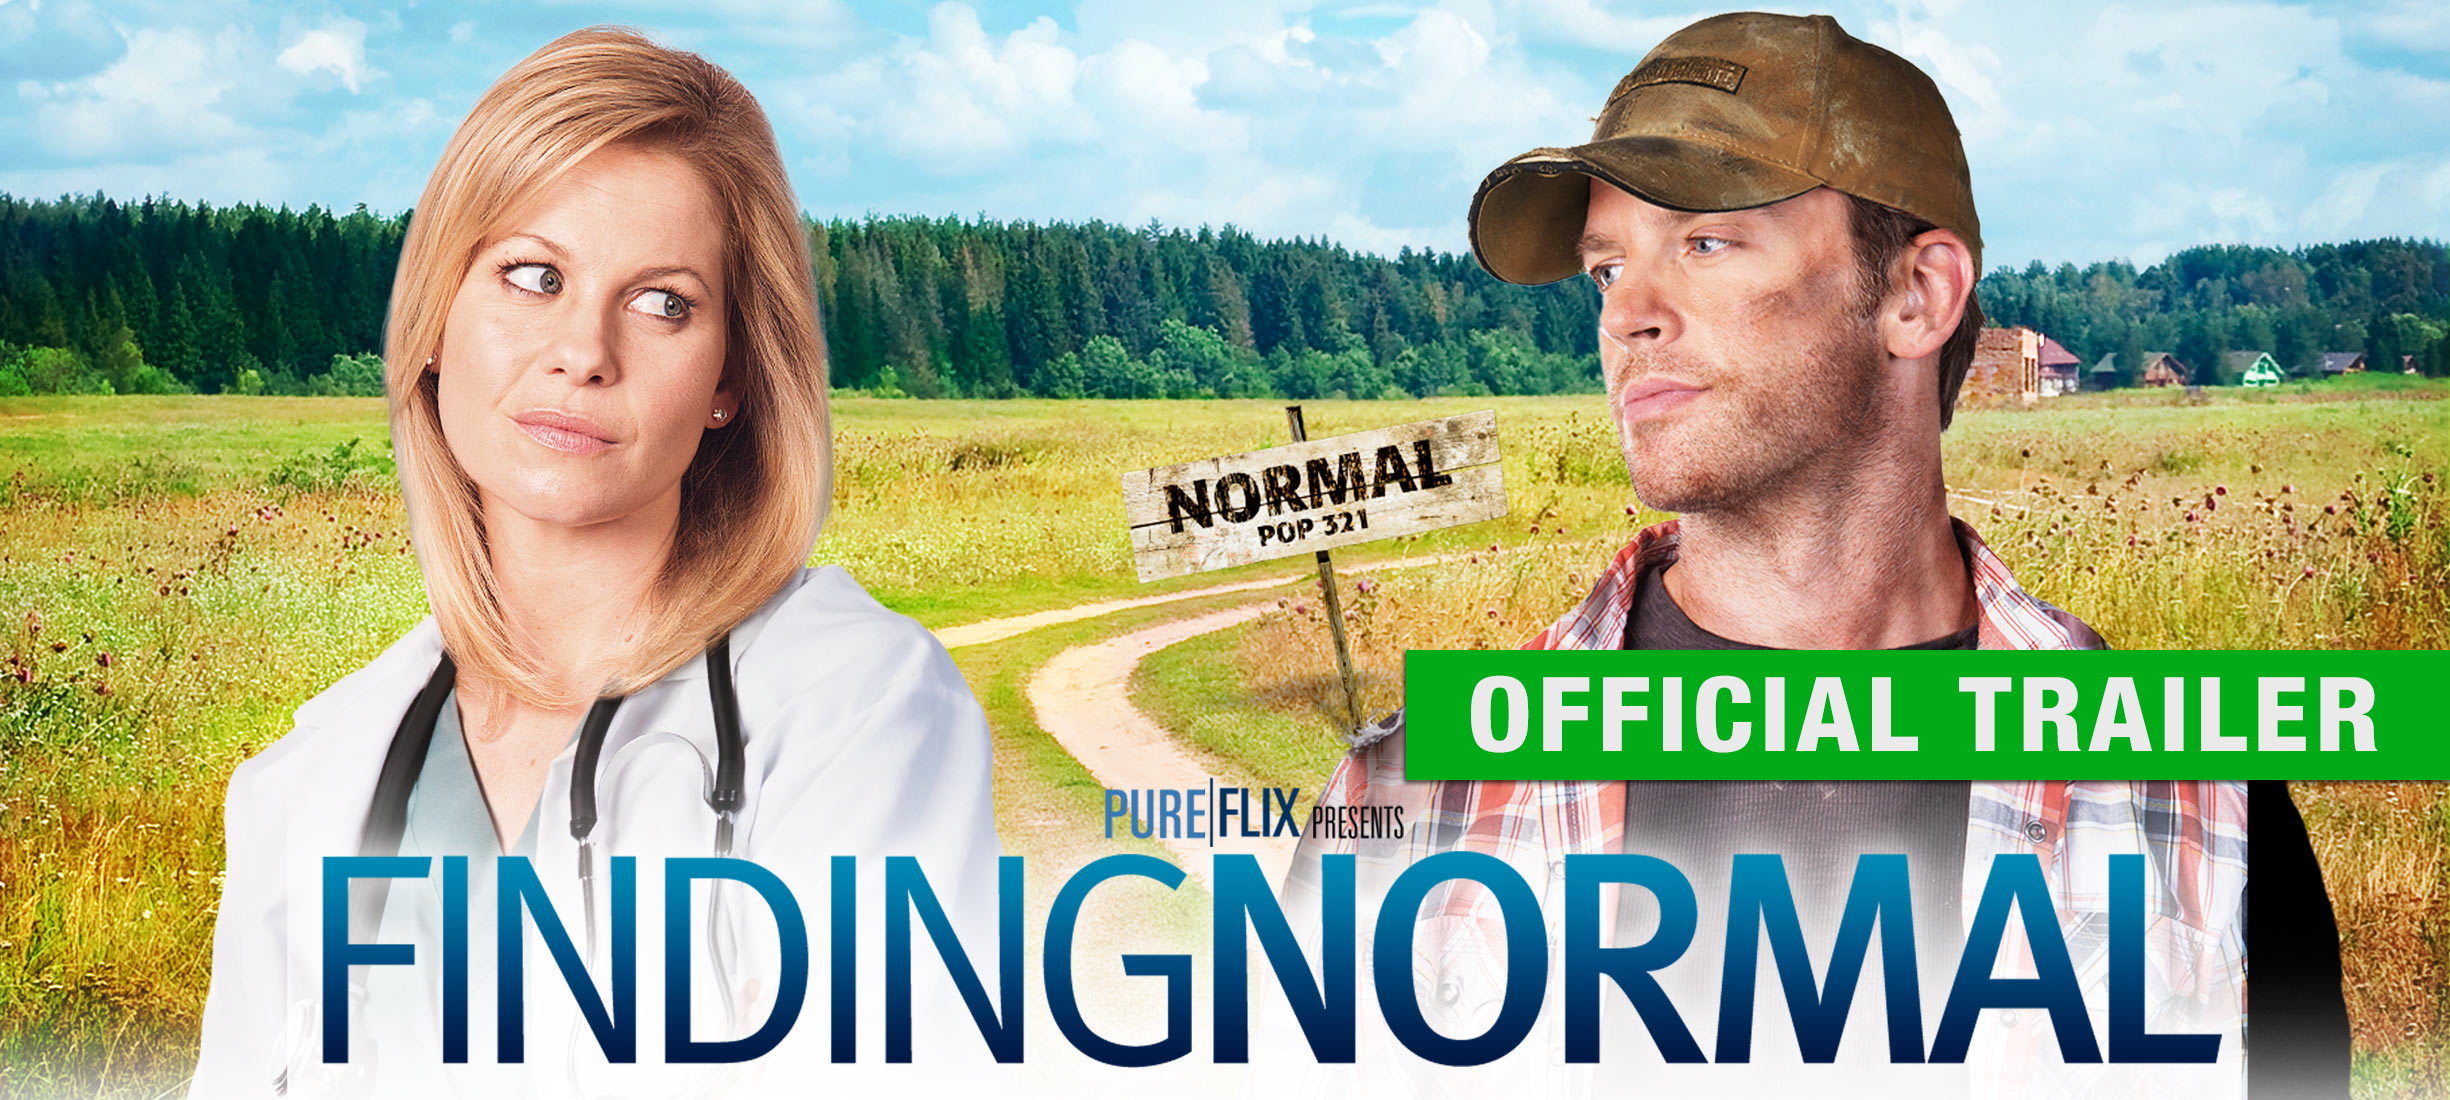 Finding Normal: Trailer